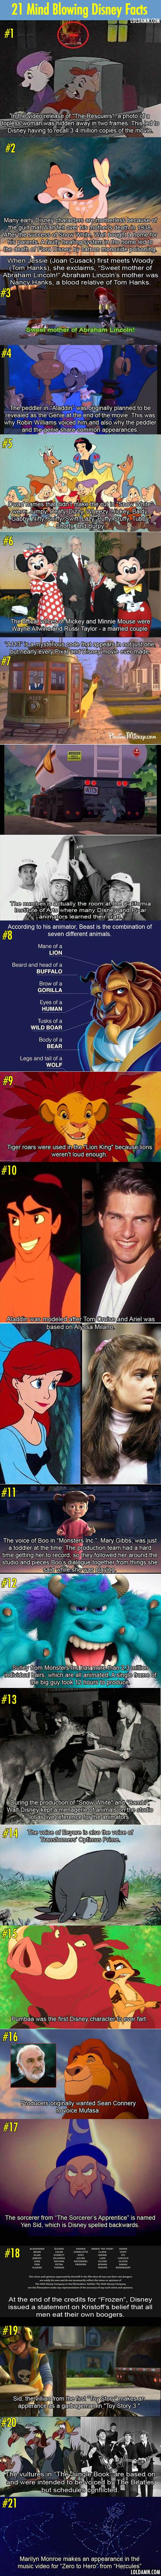 Another 21 Disney movies facts that will blow your mind. <<-- I knew about #1 because I bought my copy the day they recalled it!